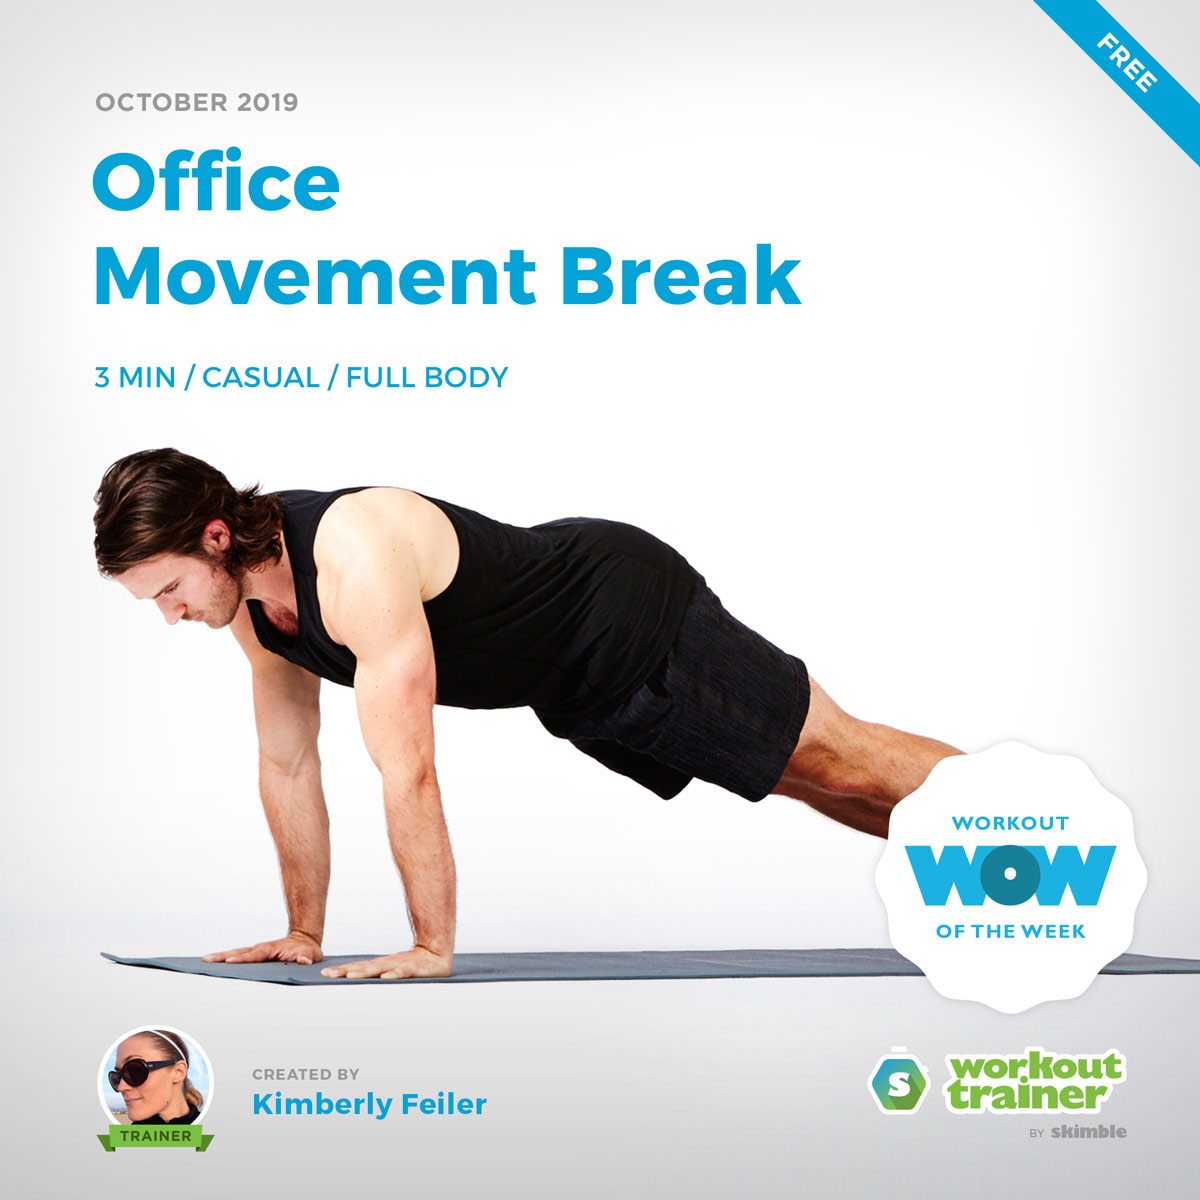 Workout Trainer by Skimble: Free Workout of the Week: Office Movement Break by Kimberly Feiler